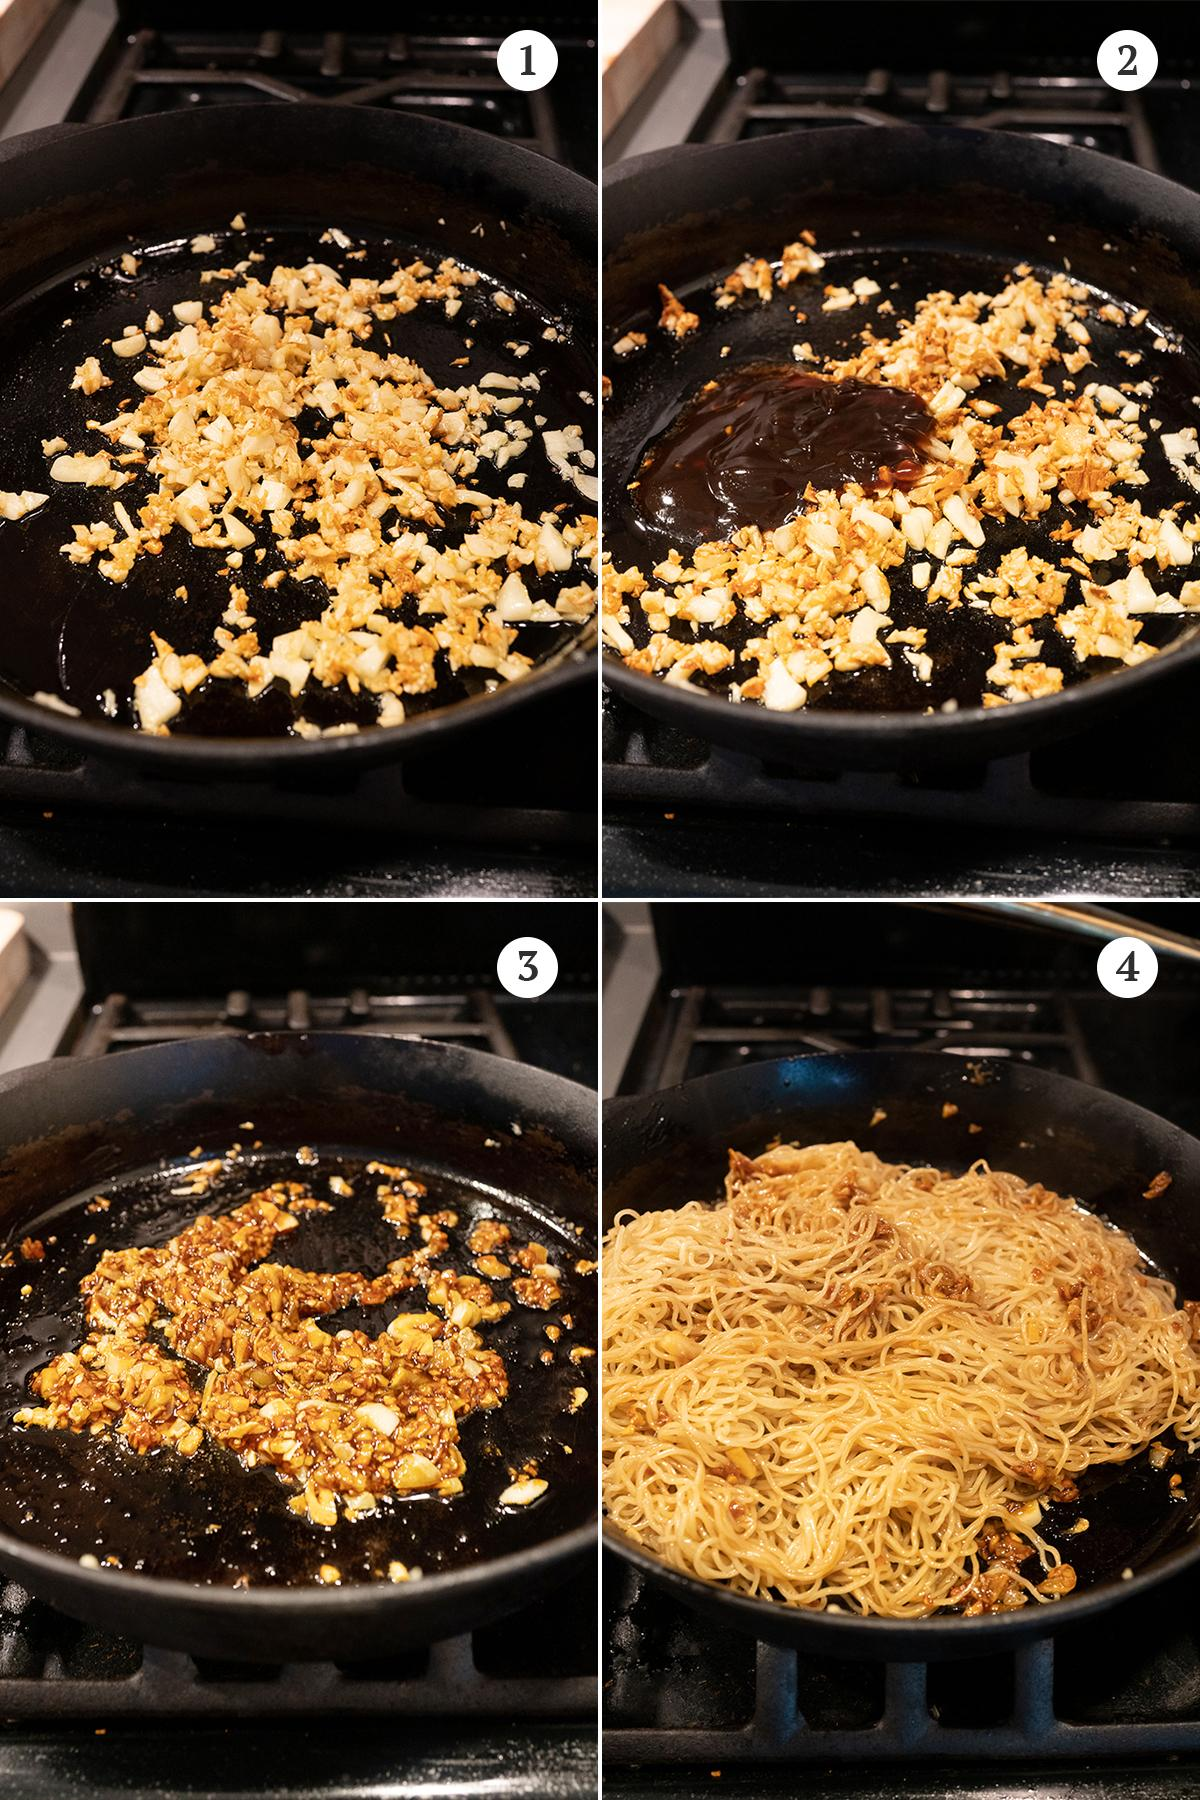 Collage of Go Lo Mein cooking steps: brown the garlic, add the oyster sauce and soy sauce mixture, stir to mix, toss with the boiled thin egg noodles.